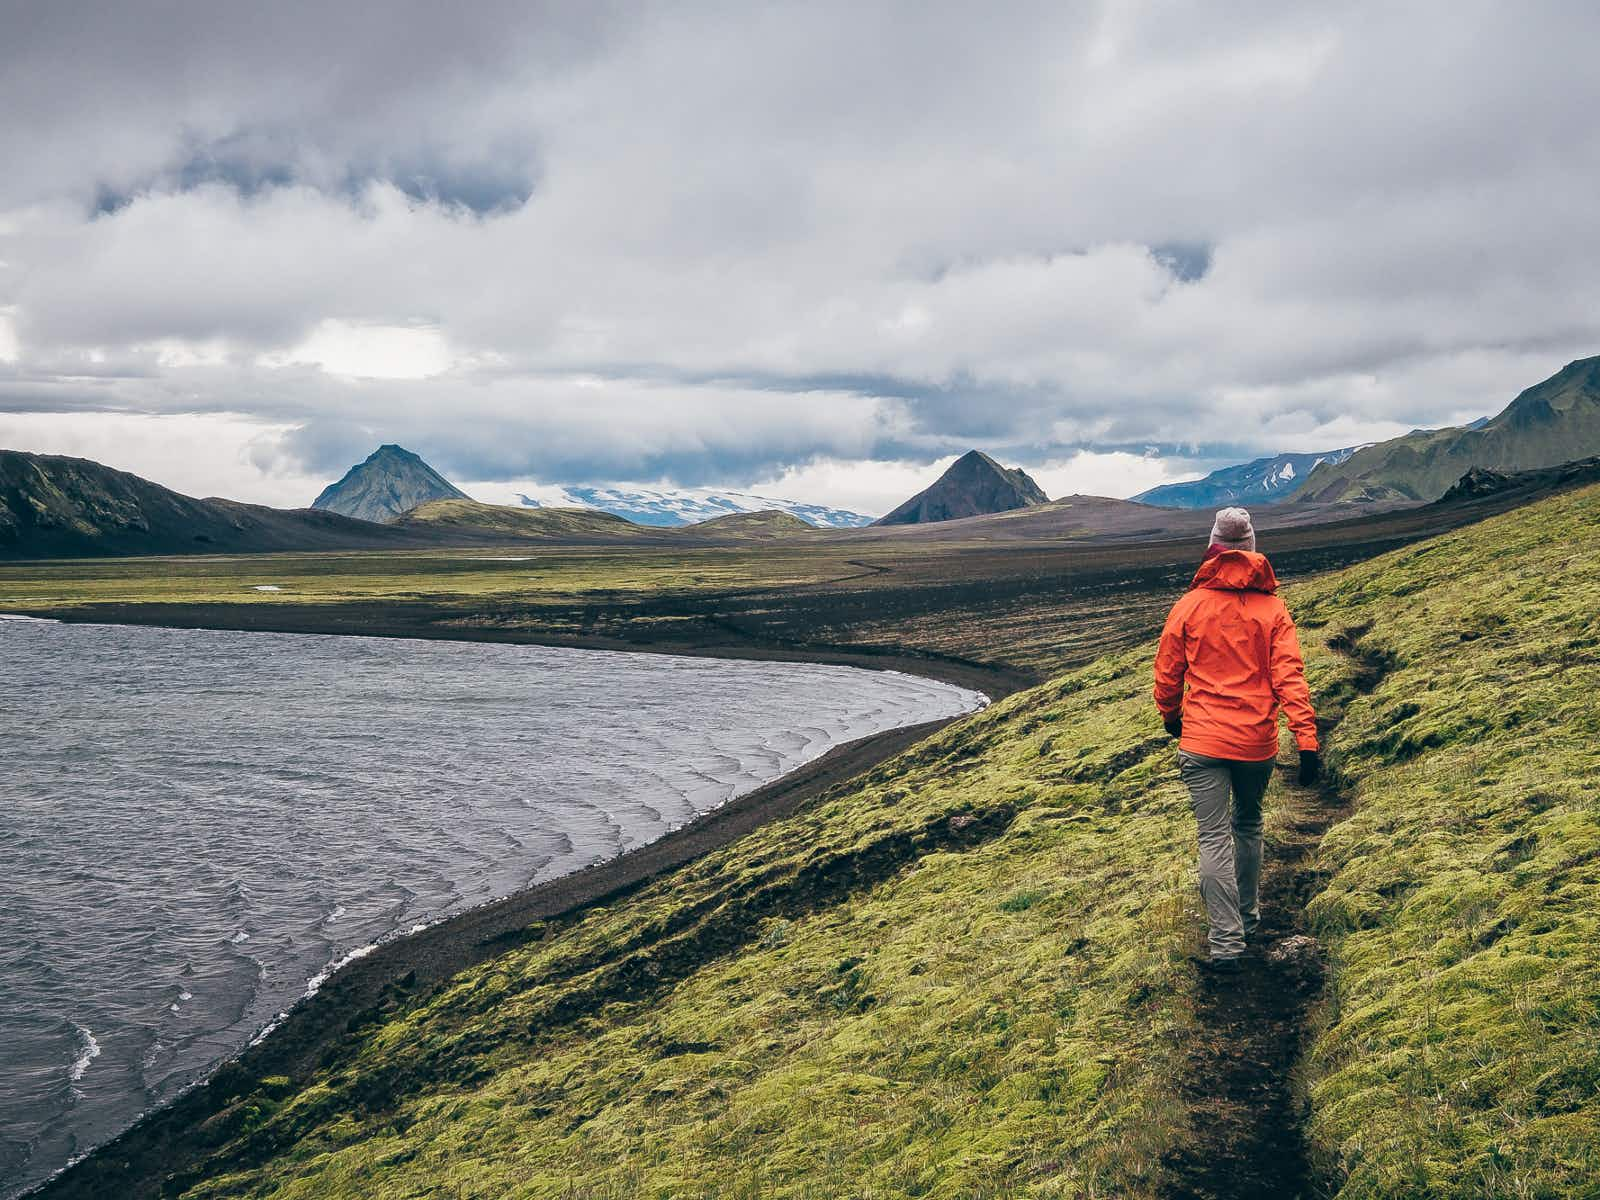 Best foot forward: hiking your way around the world